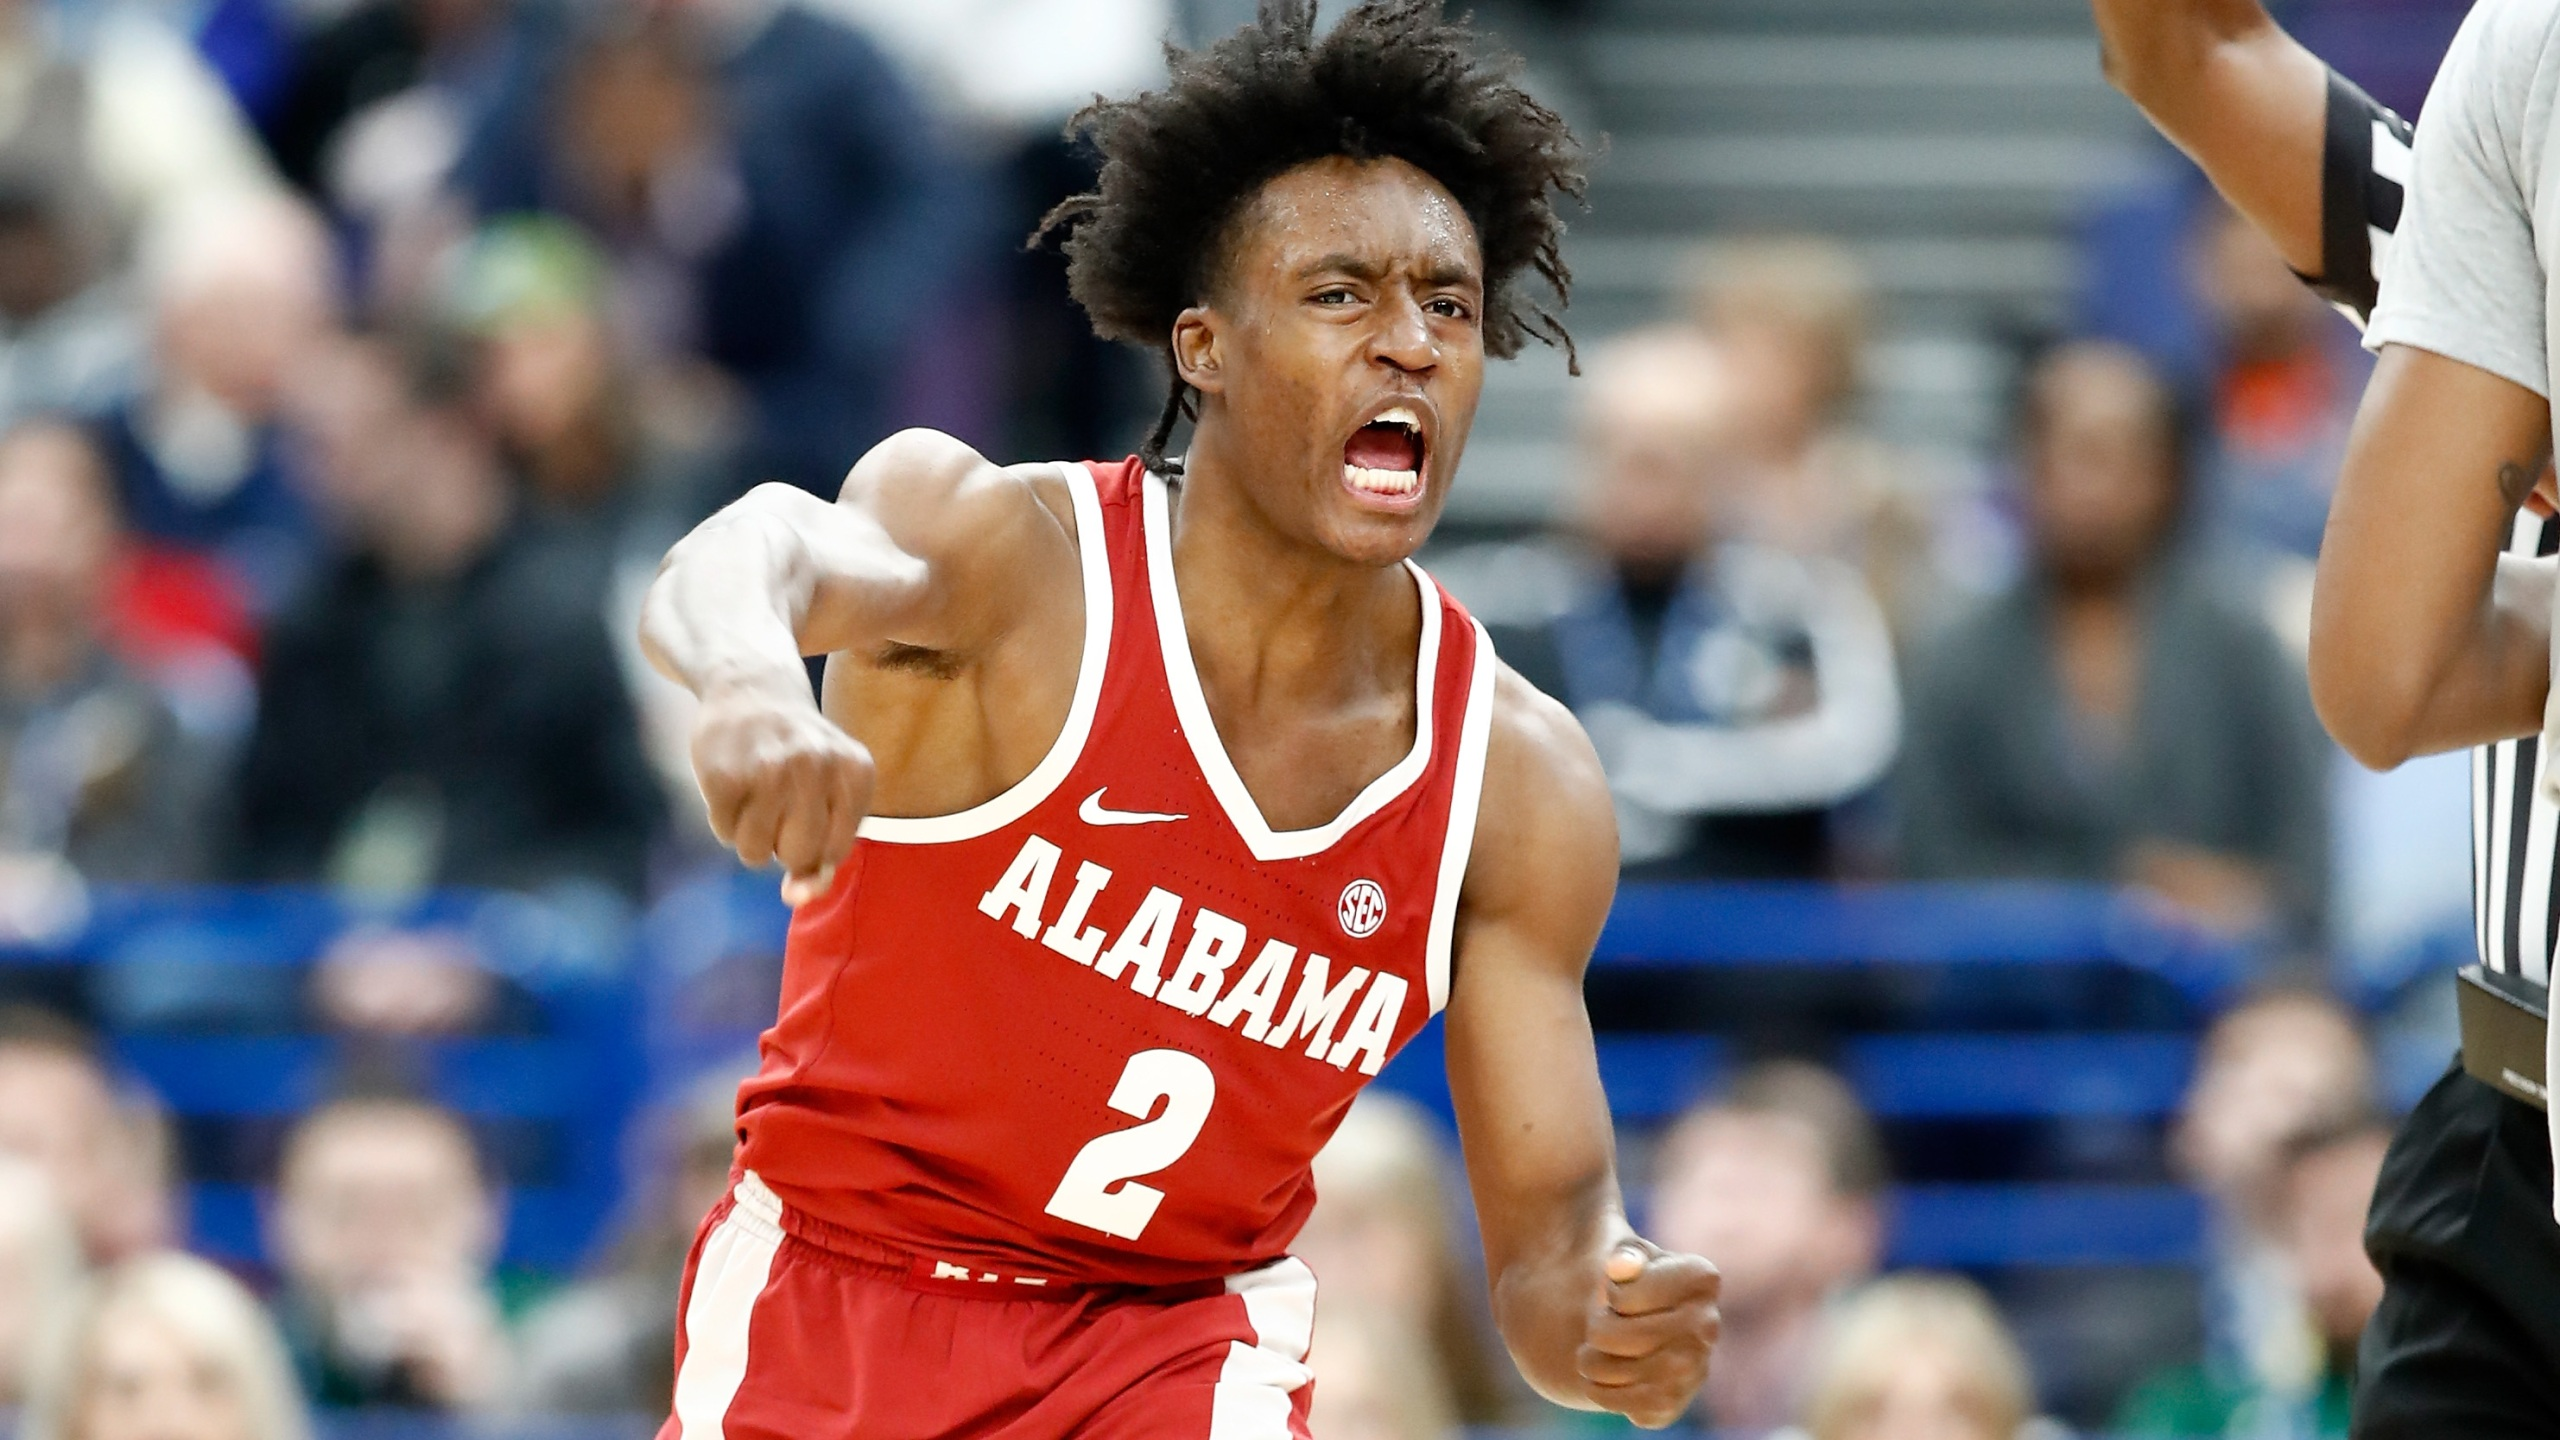 SEC Basketball Tournament - Second Round